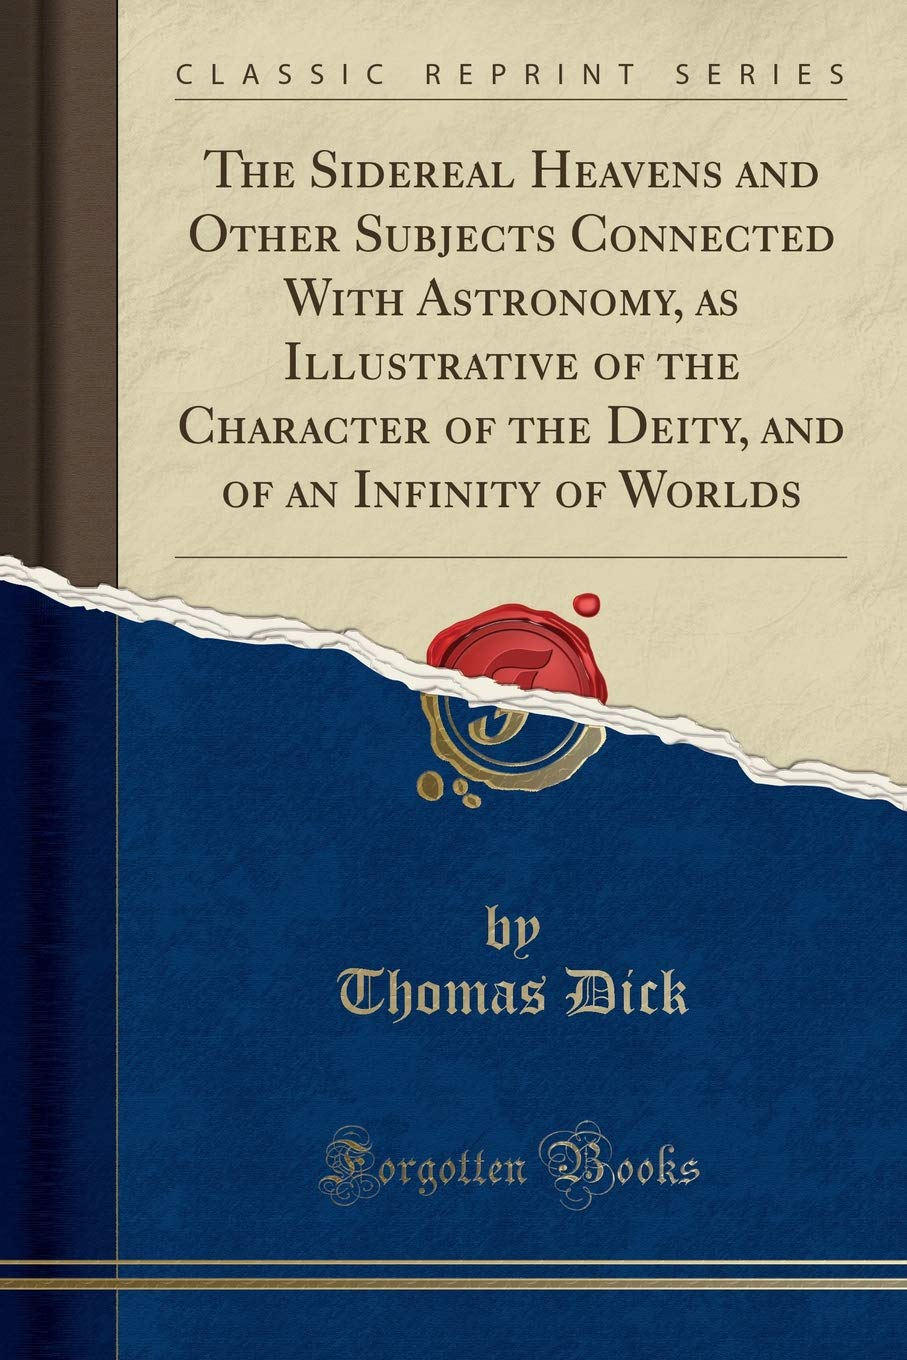 Download The Sidereal Heavens and Other Subjects Connected With Astronomy, as Illustrative of the Character of the Deity, and of an Infinity of Worlds (Classic Reprint) pdf epub